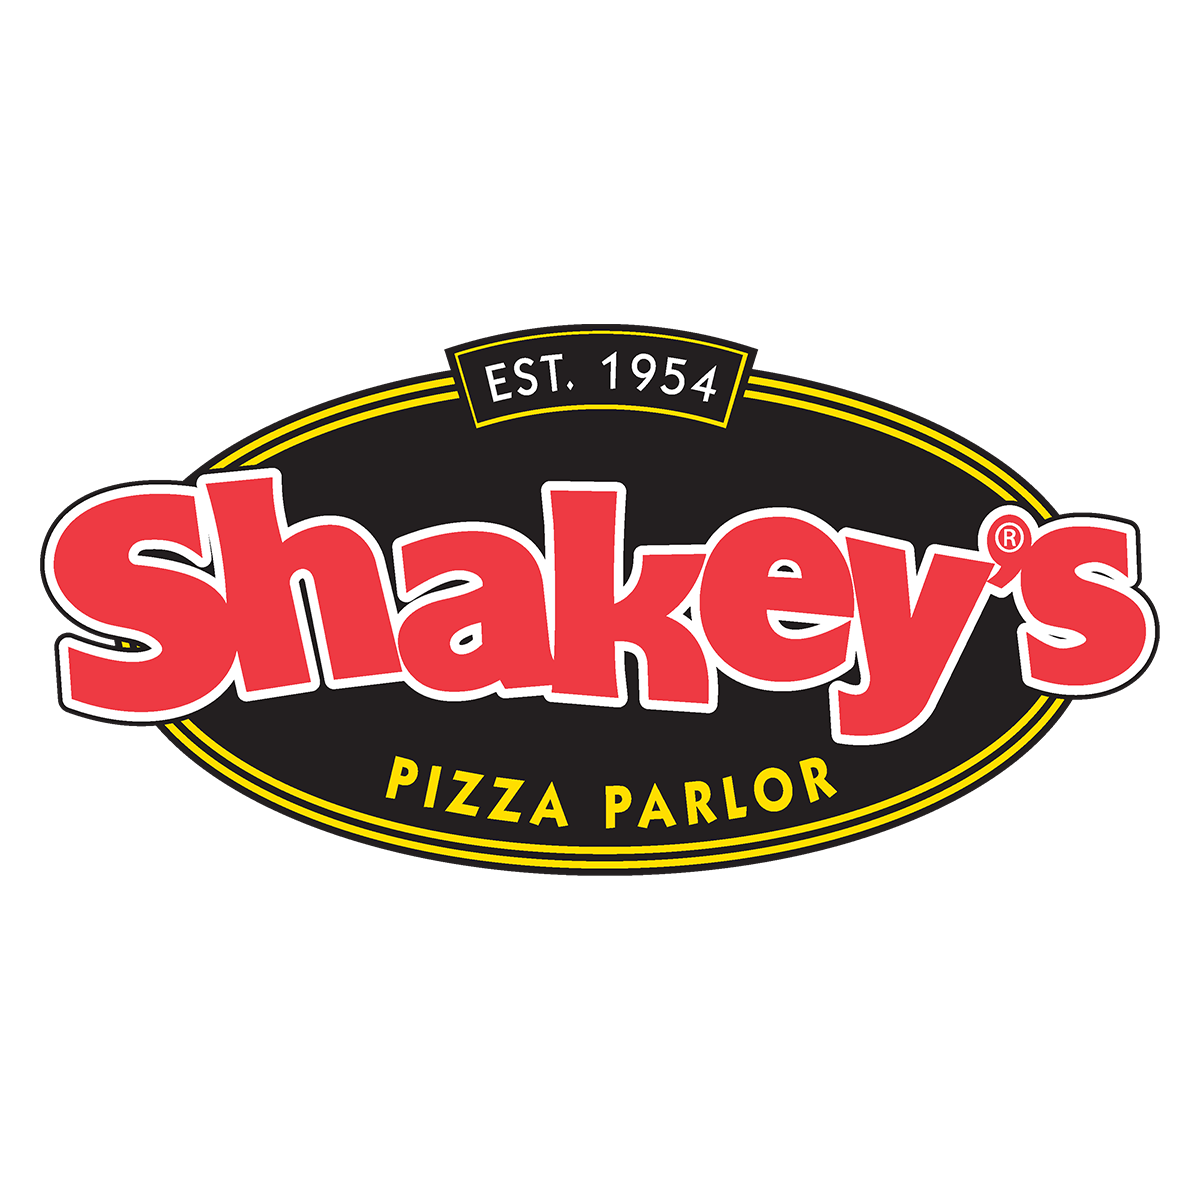 Round Table Pizza Anderson.Shakey S Pizza Parlor Serving The World S Greatest Pizza Since 1954